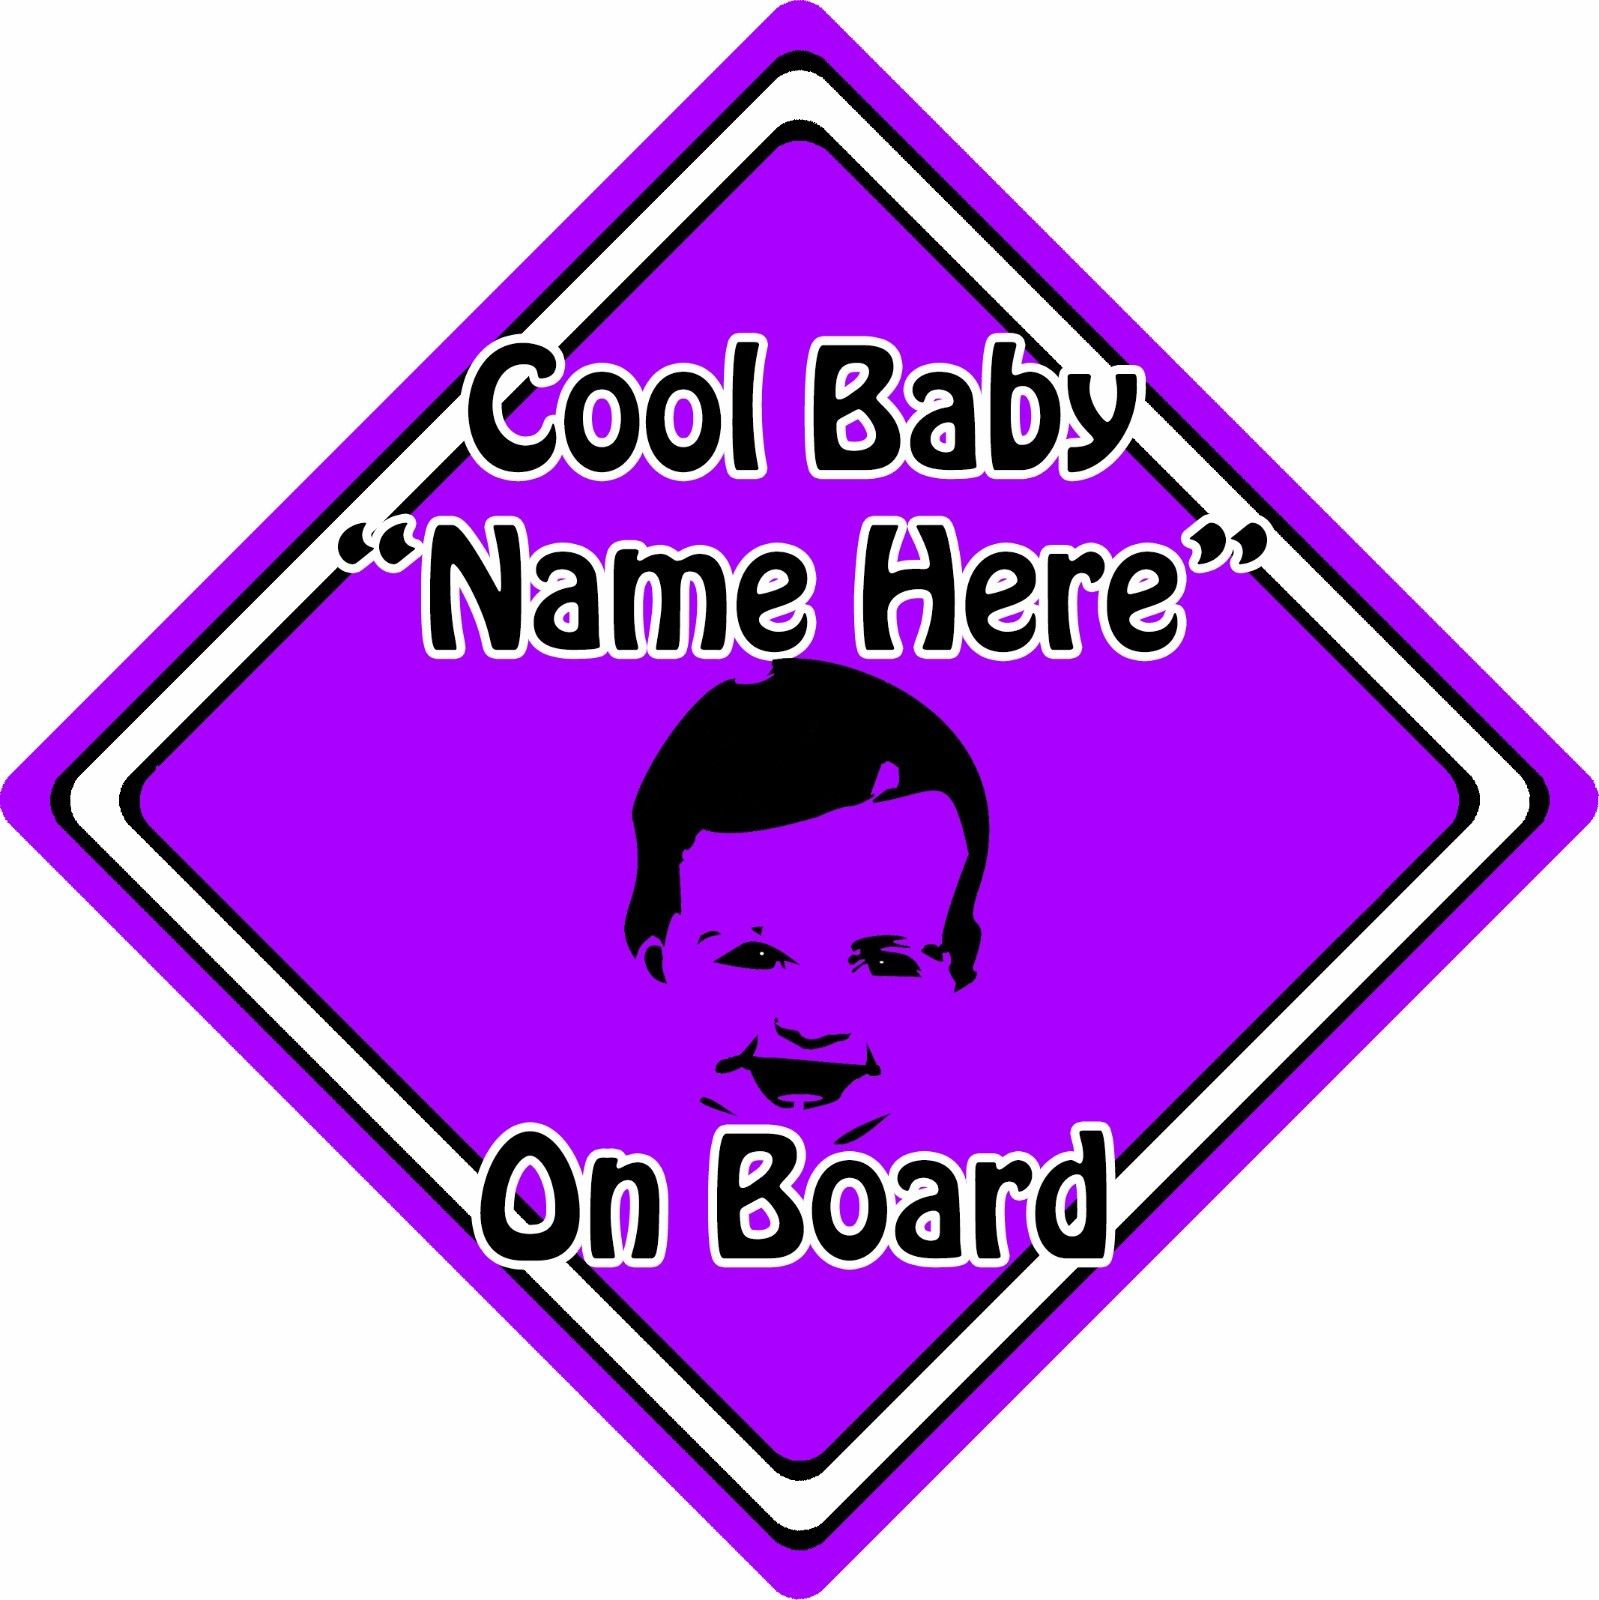 Personalised-Cool-BabyChild-On-Board-Car-Sign-Baby-Face-Silhouette-Purple-152406127947